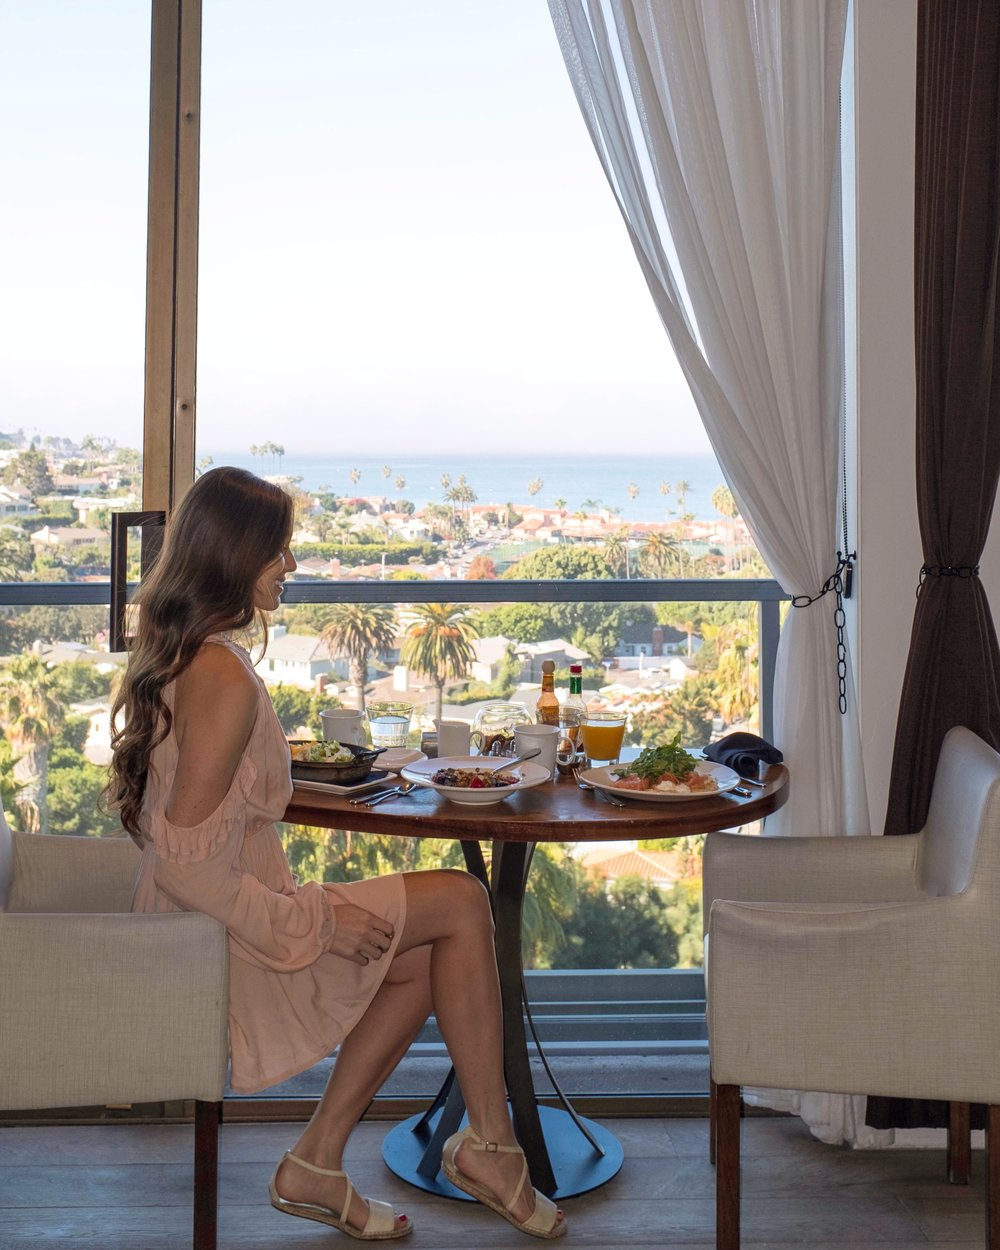 Cusp Restaurant on the eleventh floor of hotel la jolla offers delicious breakfast and a stunning view of the coast